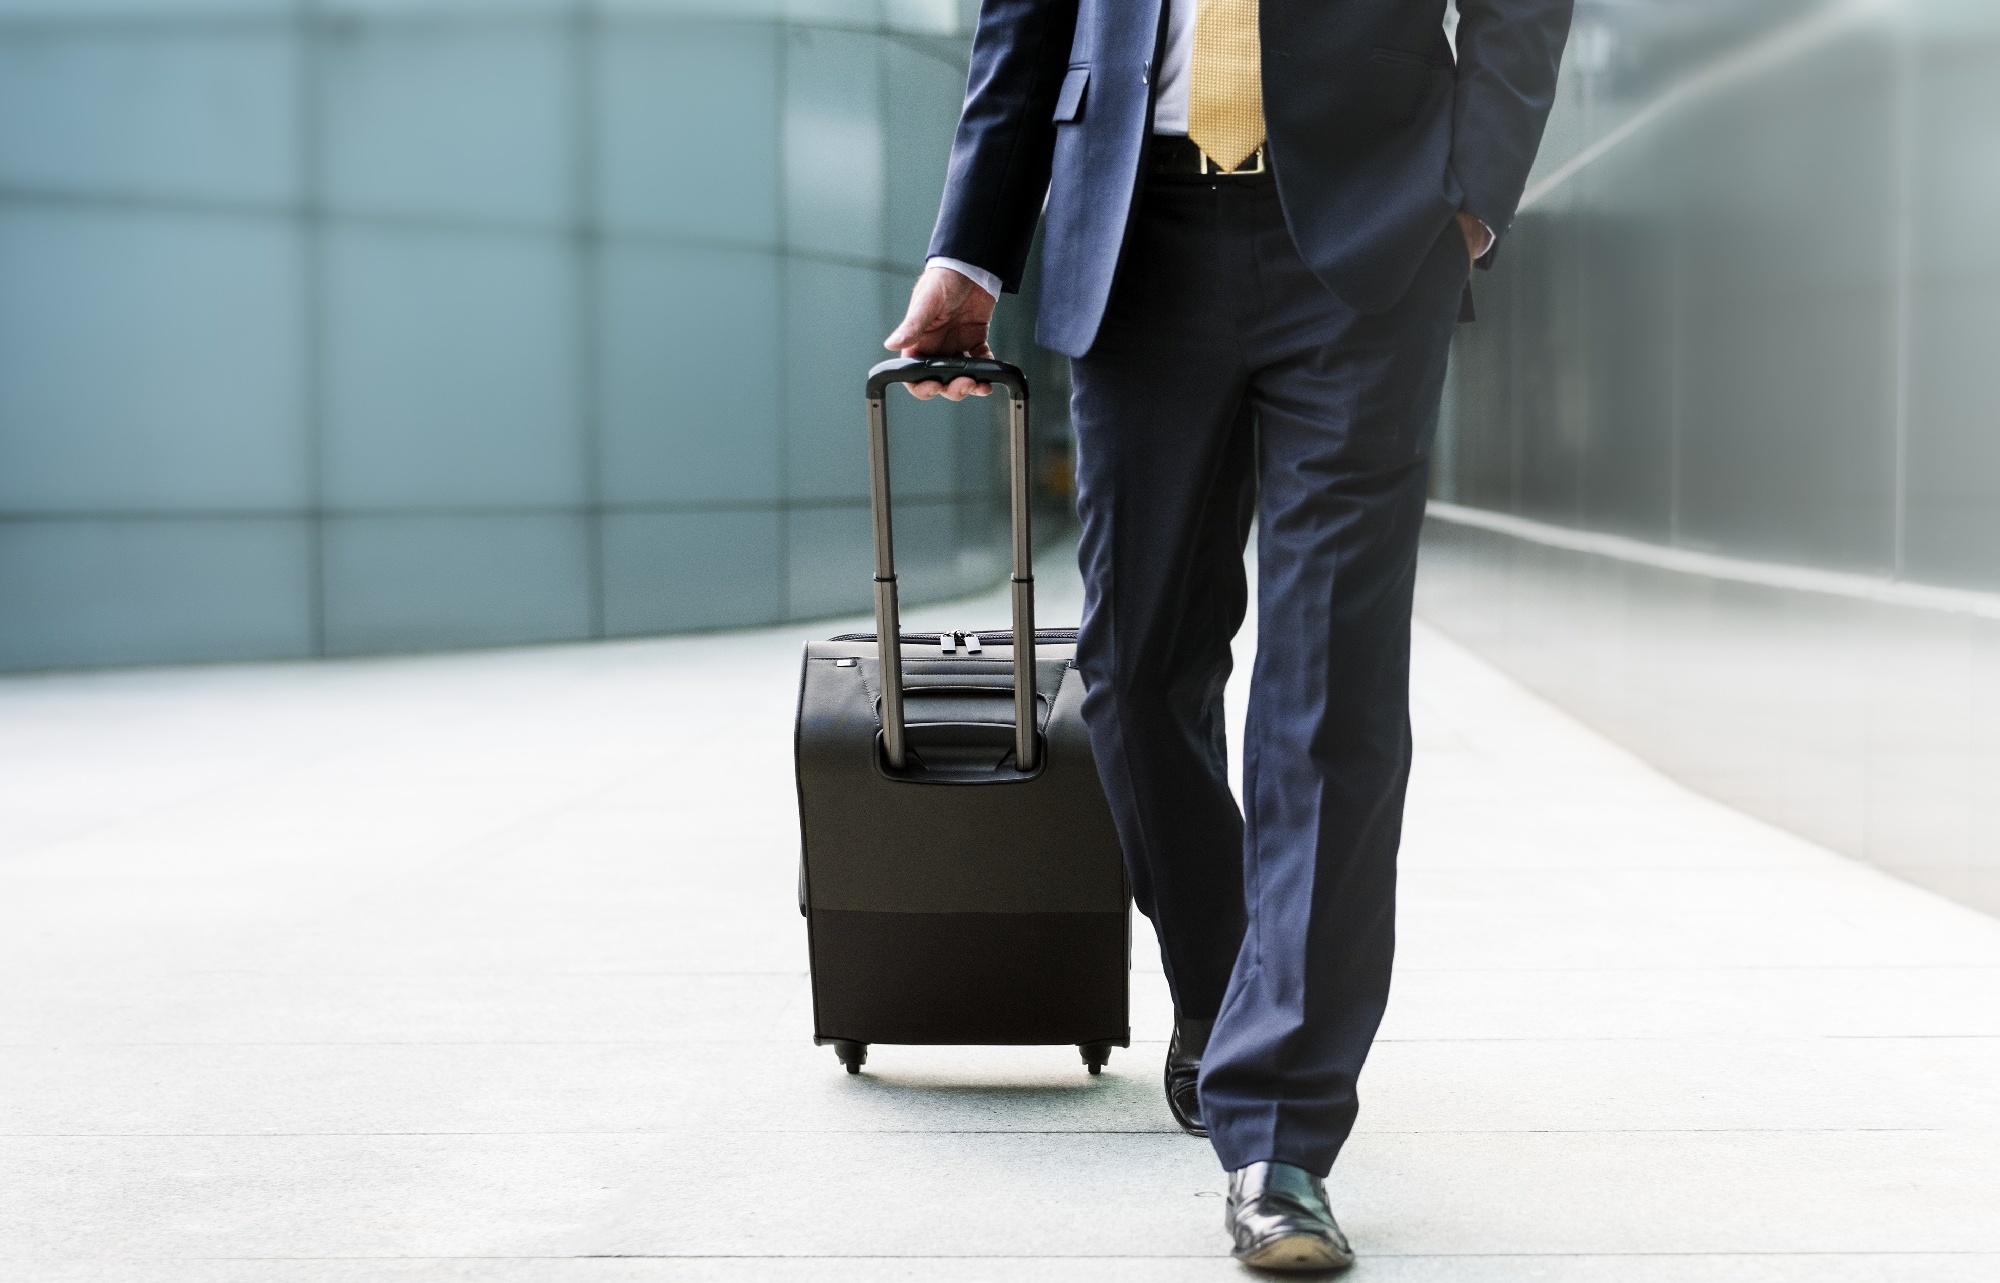 Man in a suit walking with a suitcase